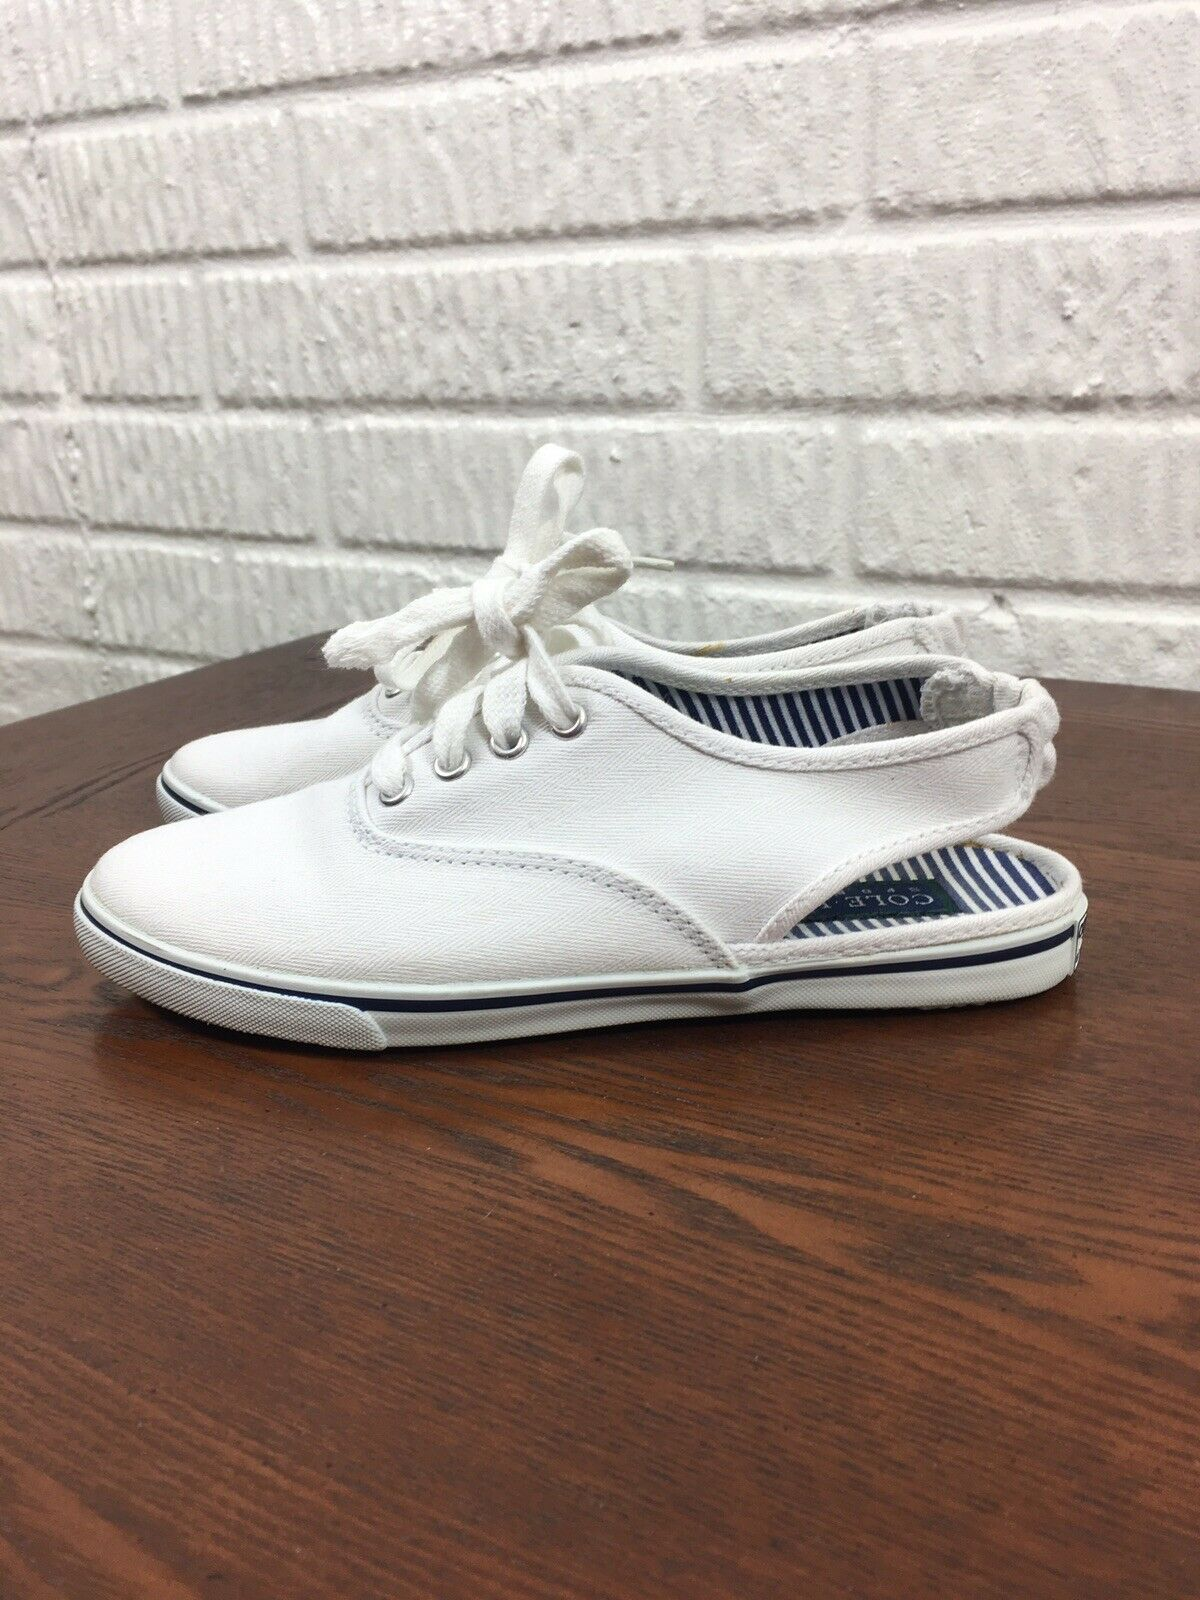 COLE HAAN Sporting Size 5M Women's White Canvas Slingback Vintage 90s